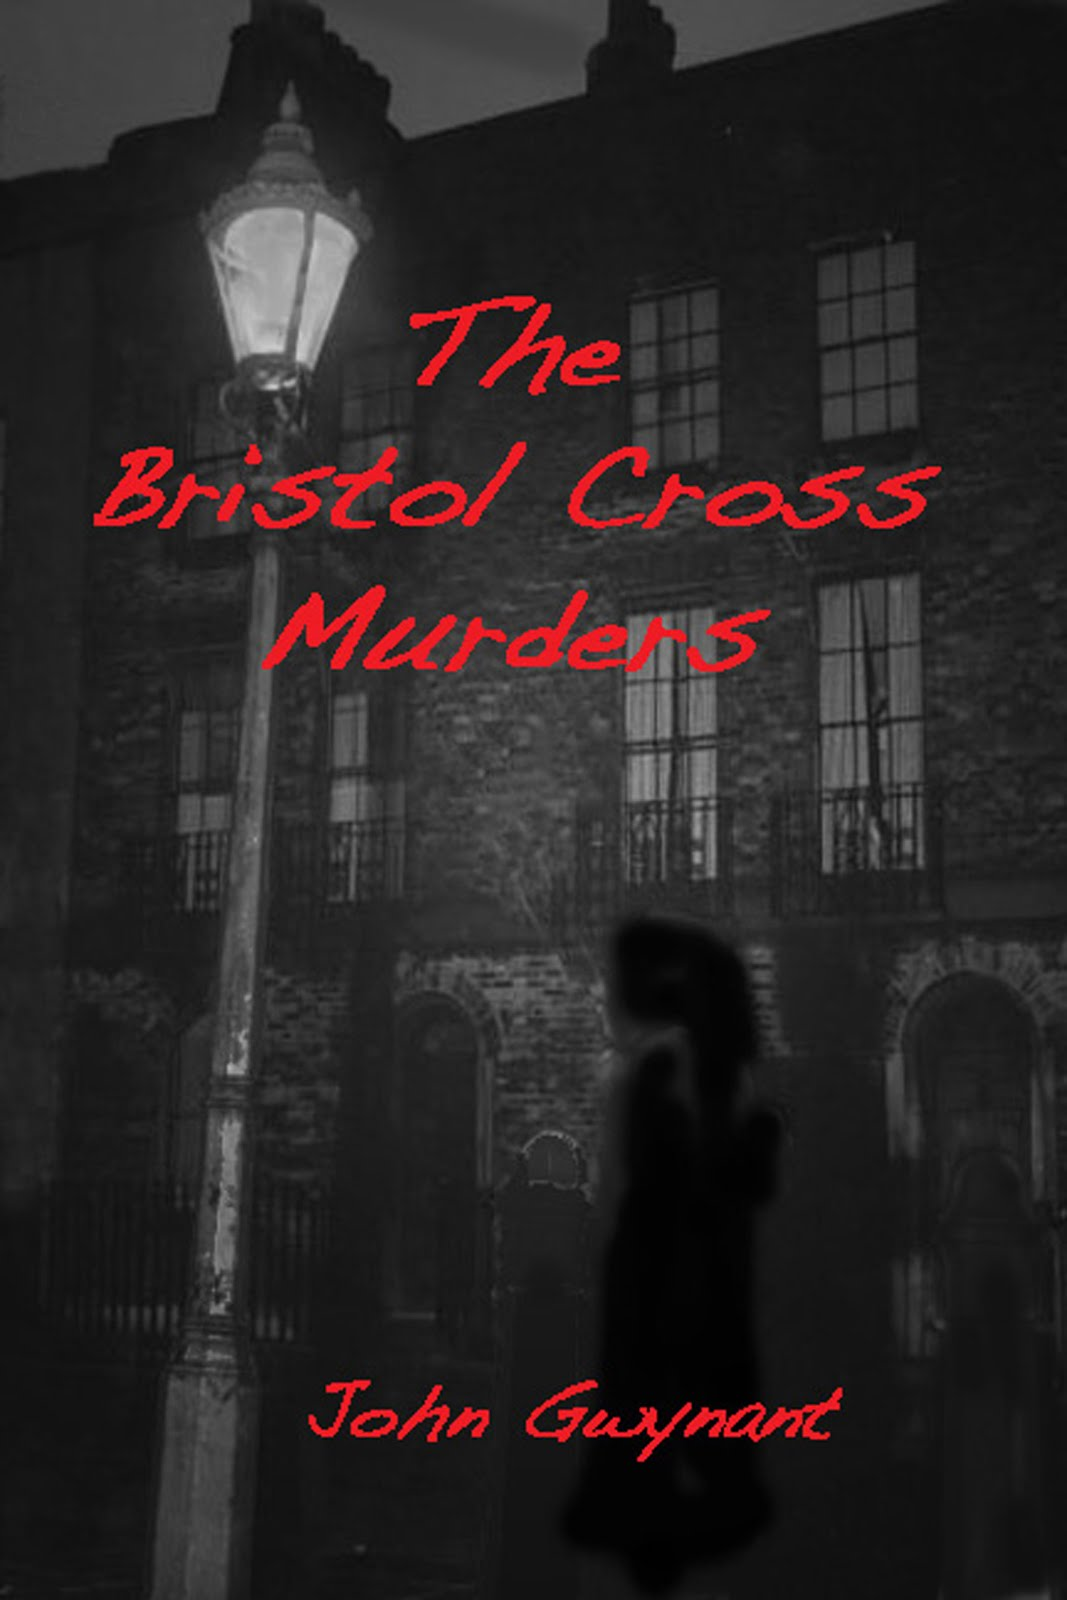 The Bristol Cross Murders